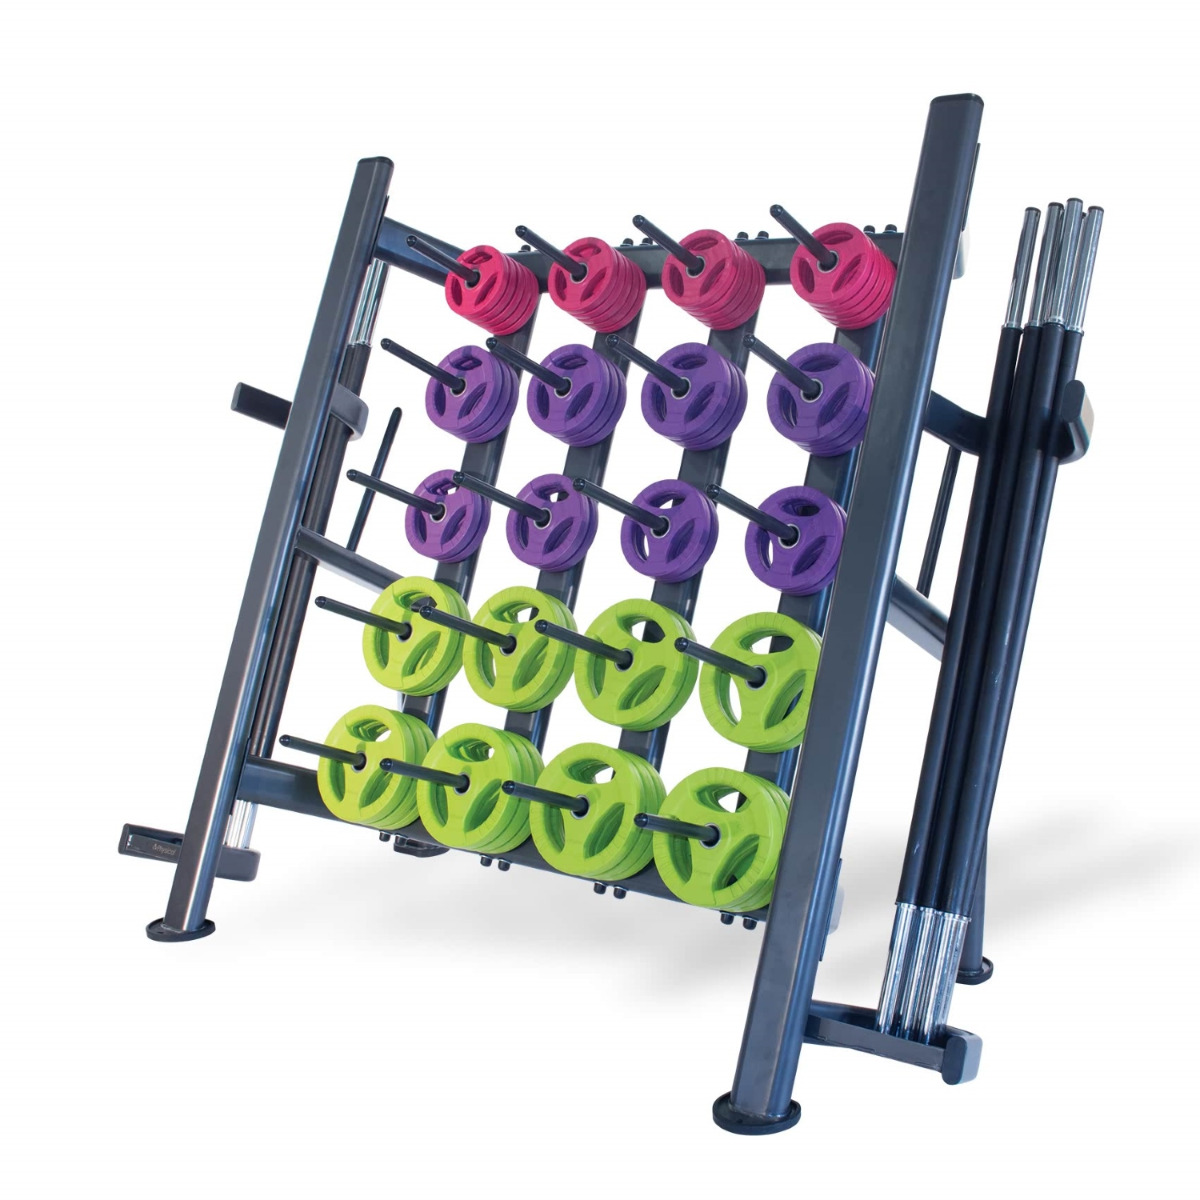 30 x Studio Pump Sets & Rack (Black Bar / Coloured Discs)